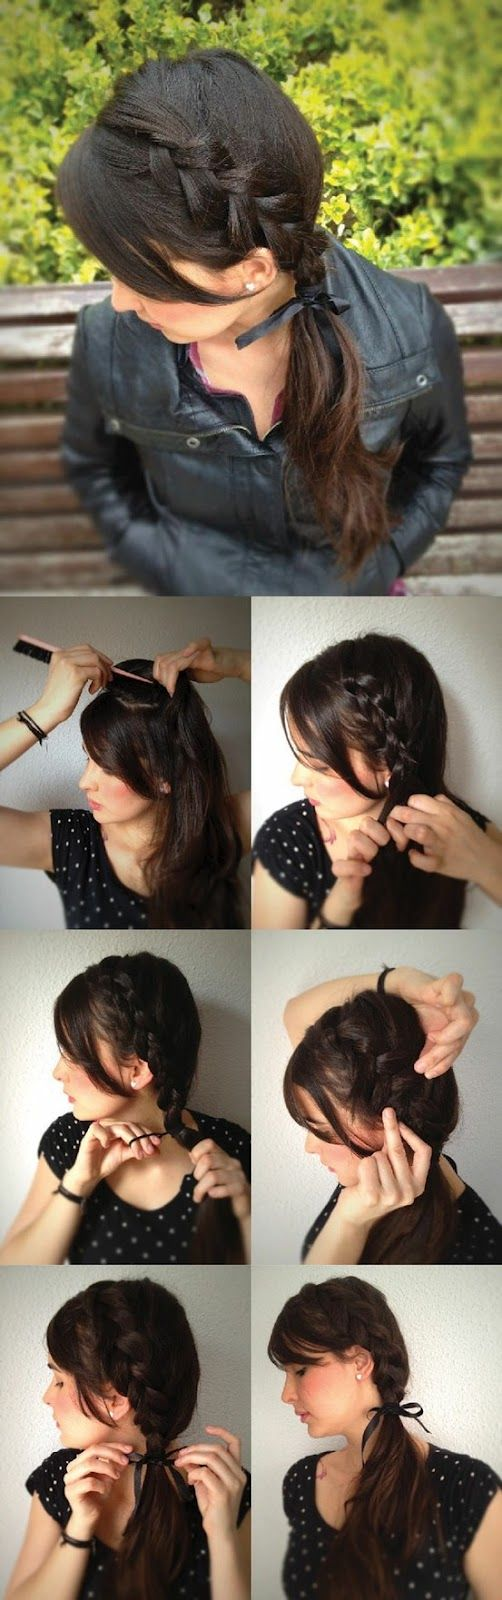 Diy: 20 Fab Hair Styles You Can Try At Home  The Perfect Line